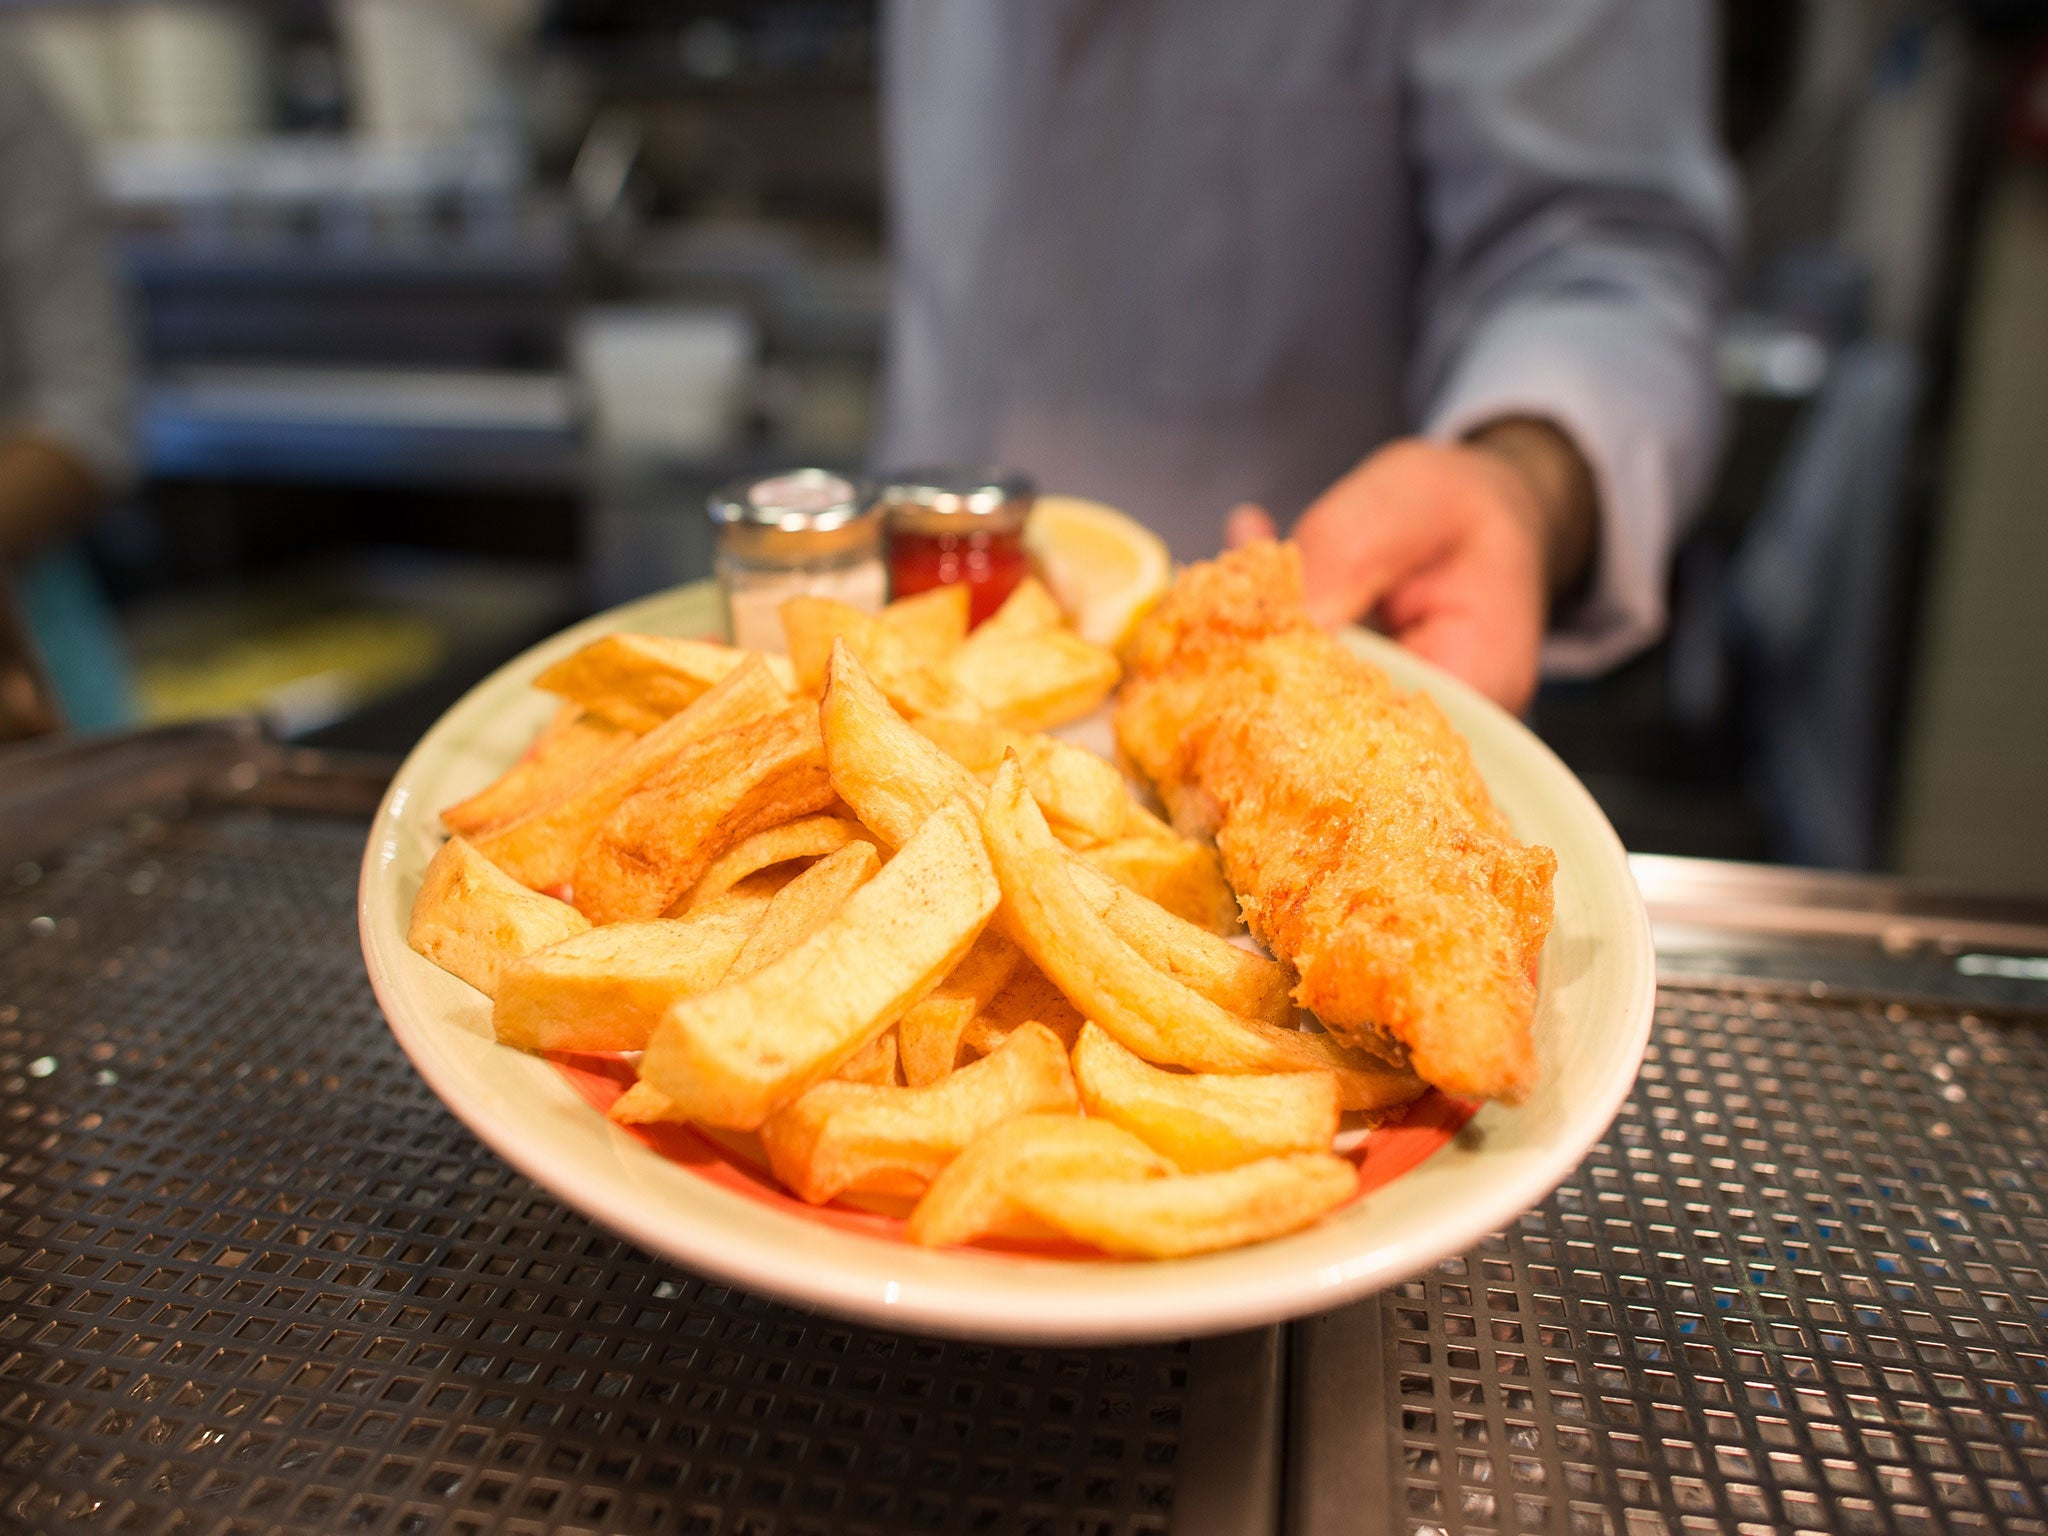 Britain's 10 best fish and chip restaurants have been revealed